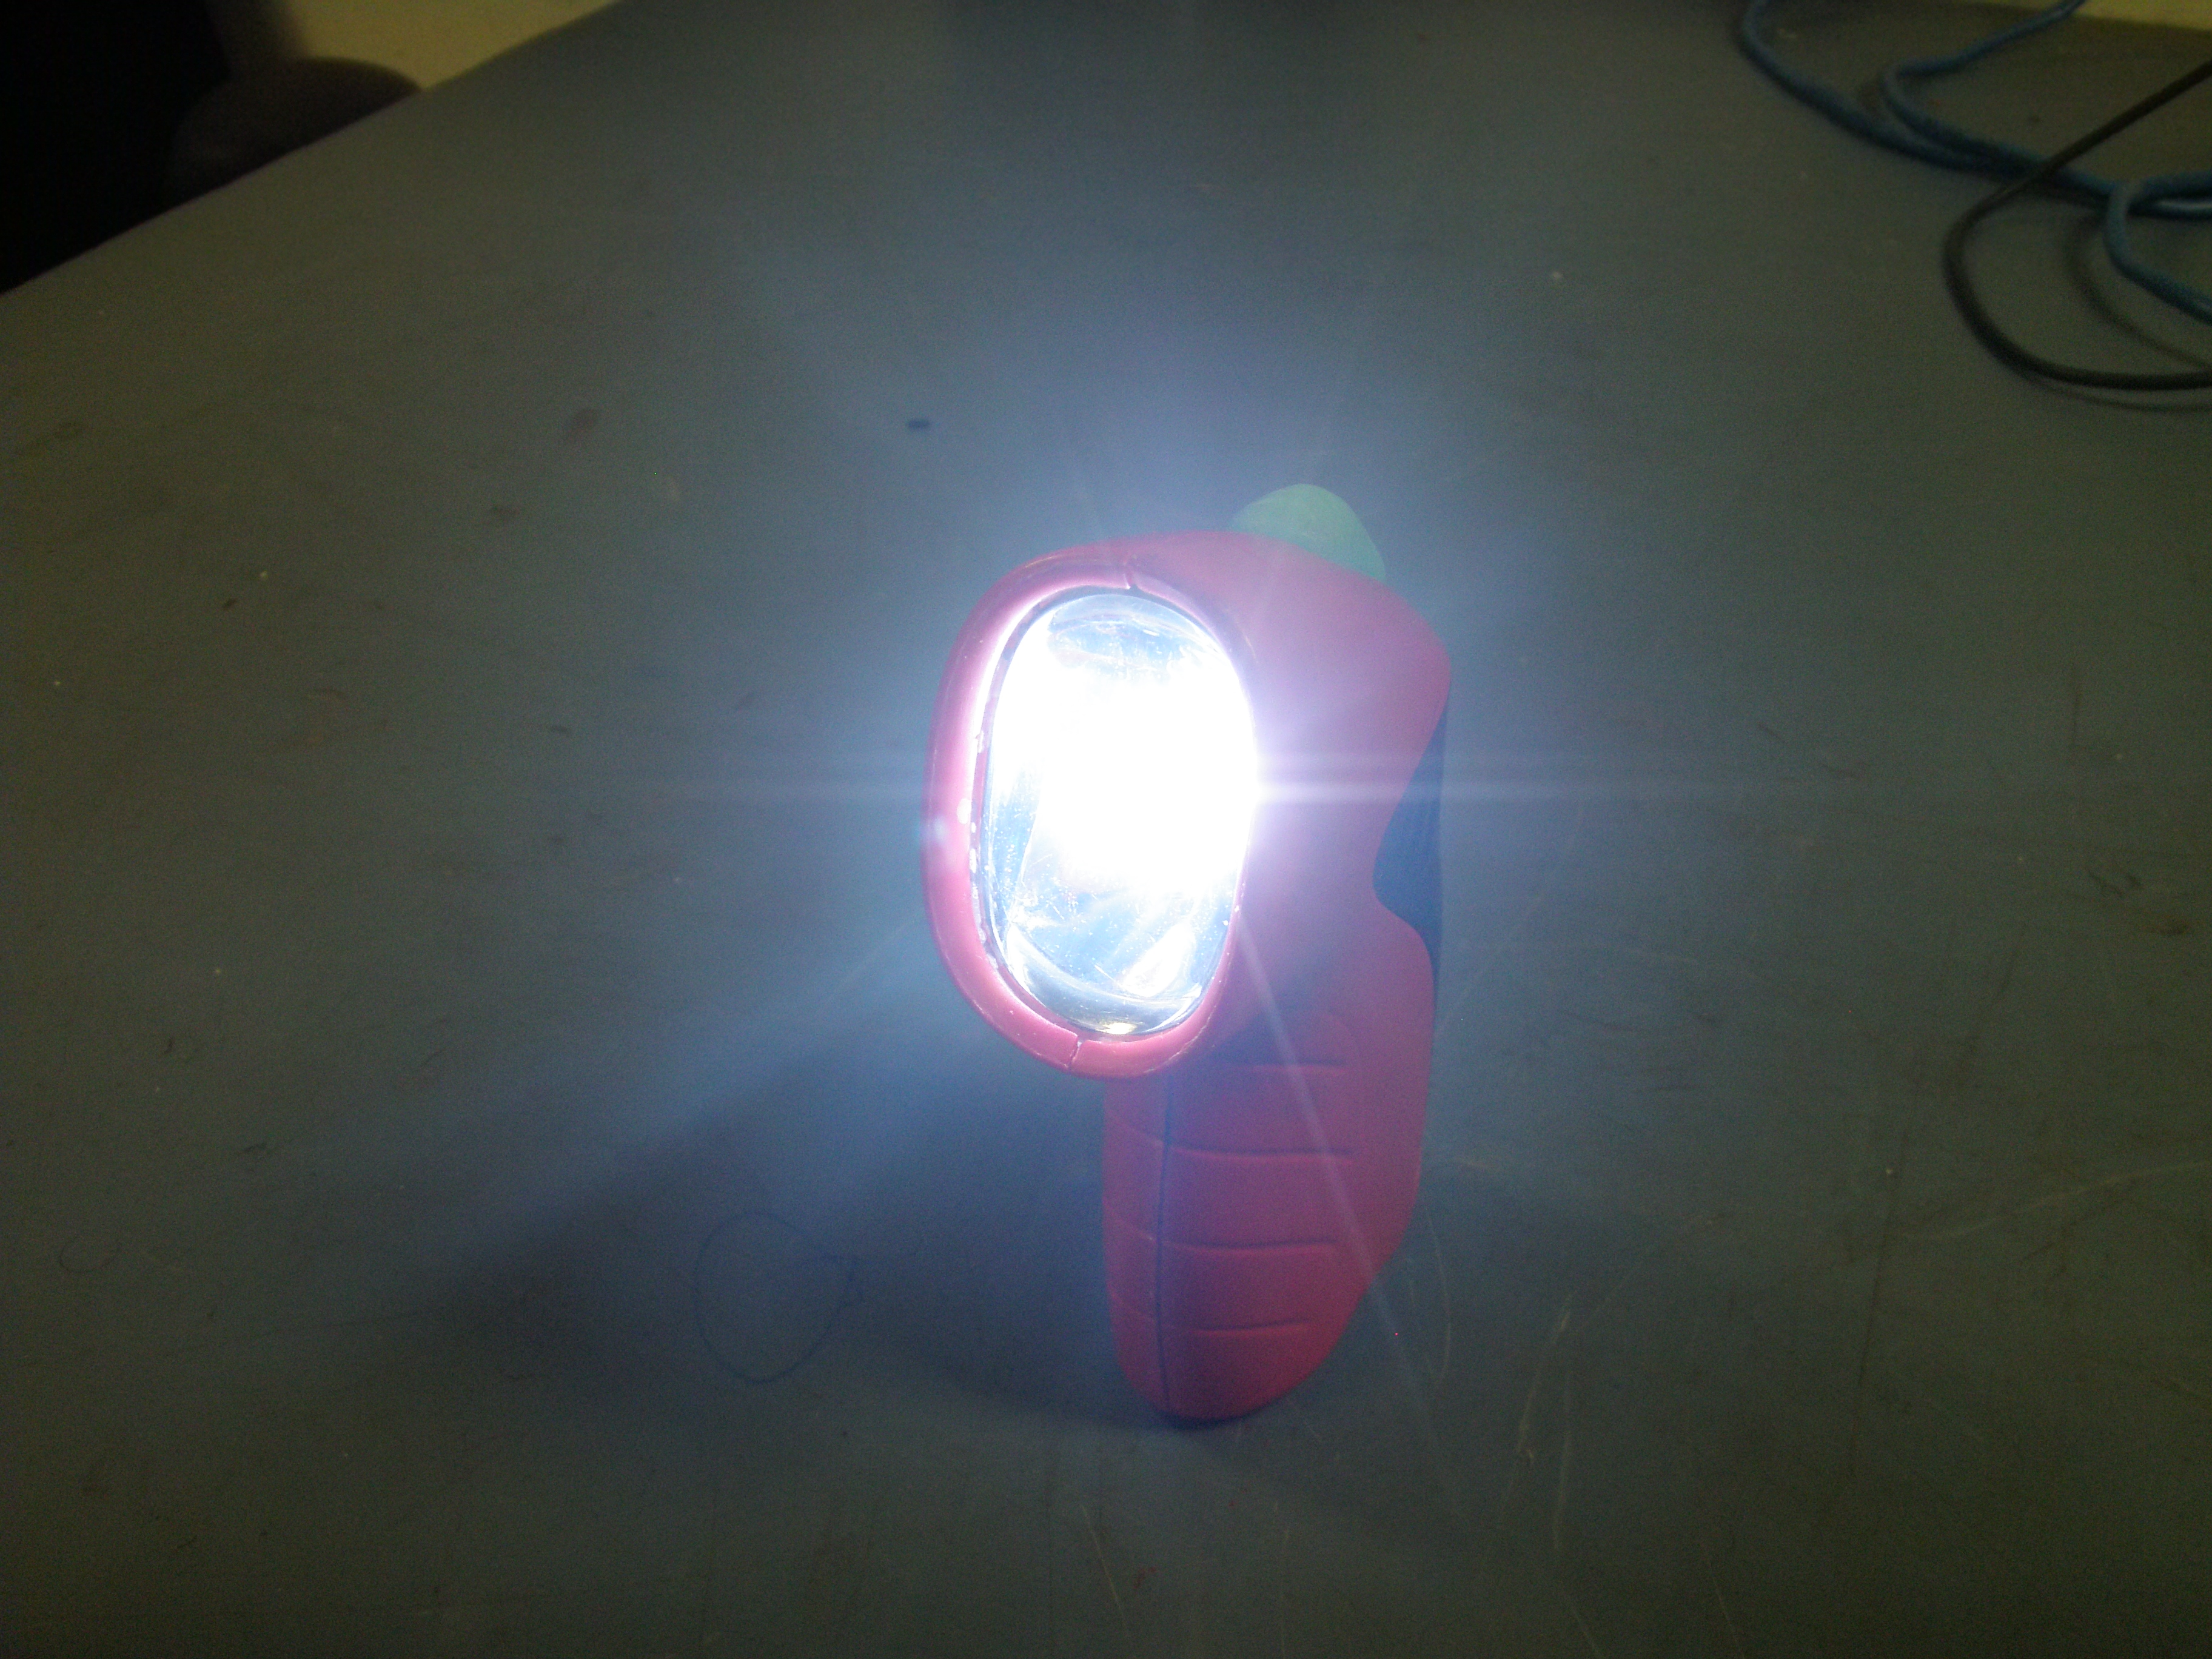 How to turn a dead flashlight into an uber LED light